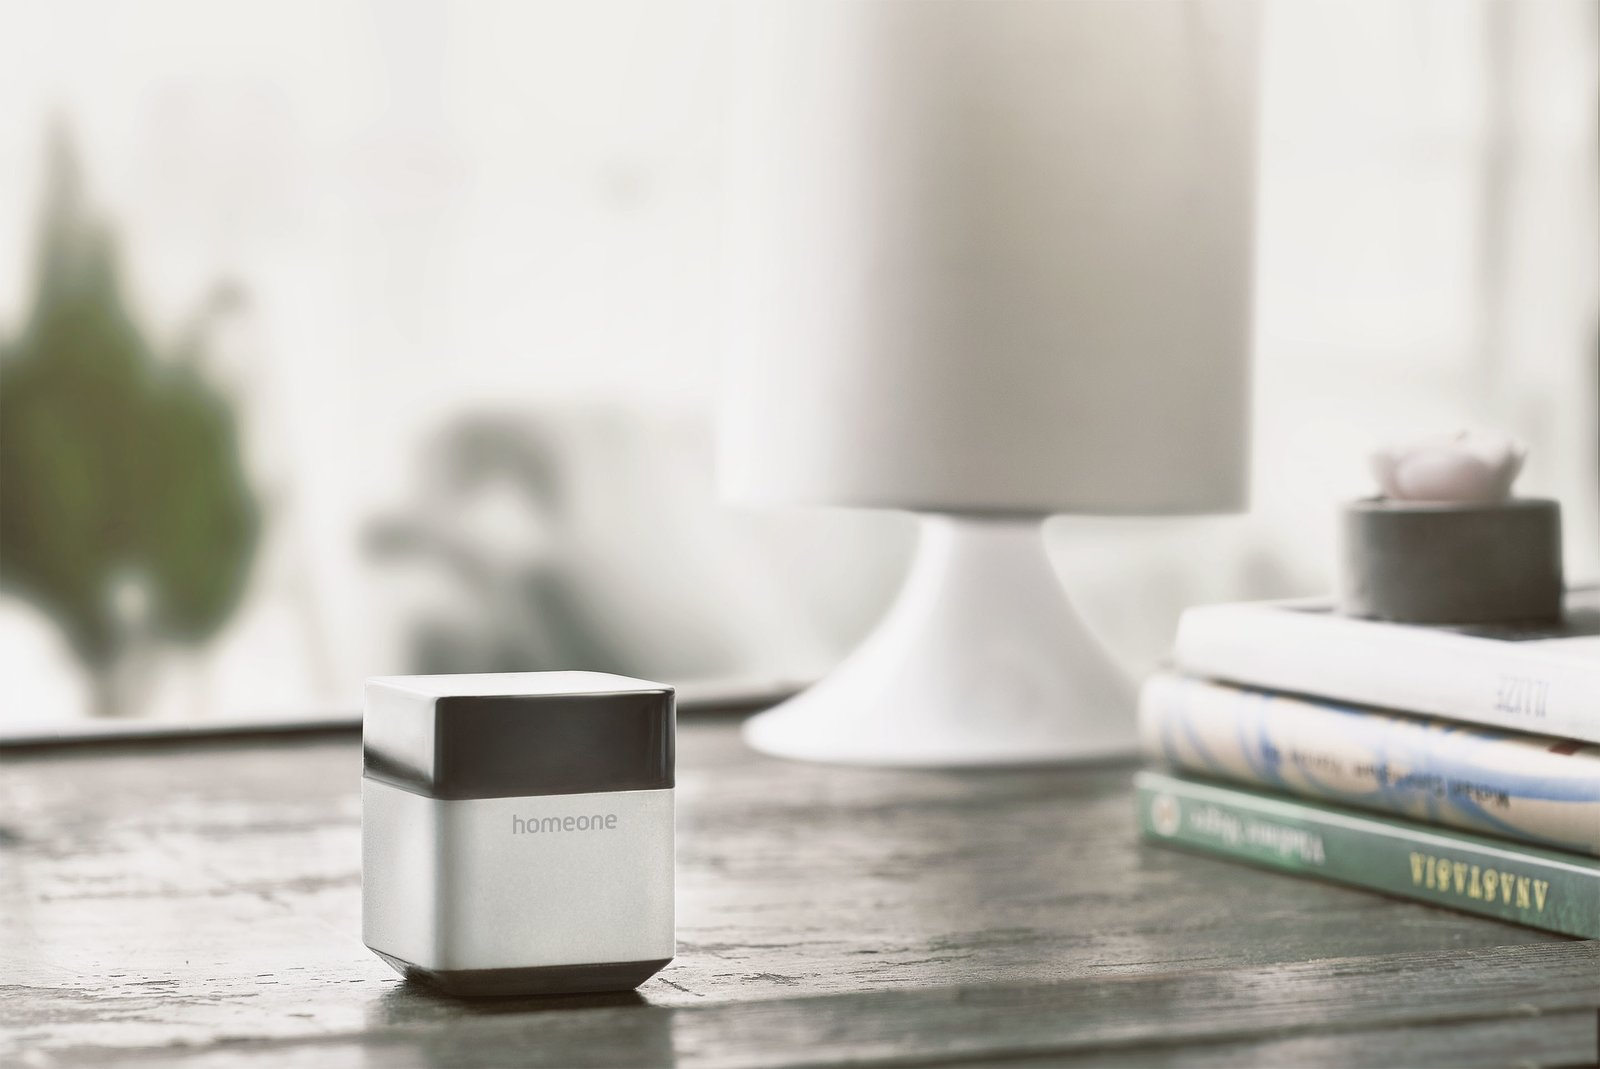 Measuring 1.8 inches high, the BlackBox is similar in size to a ring box and serves as the  Photo 2 of 5 in This Could Be the All-in-One Home Automation System You've Been Looking For